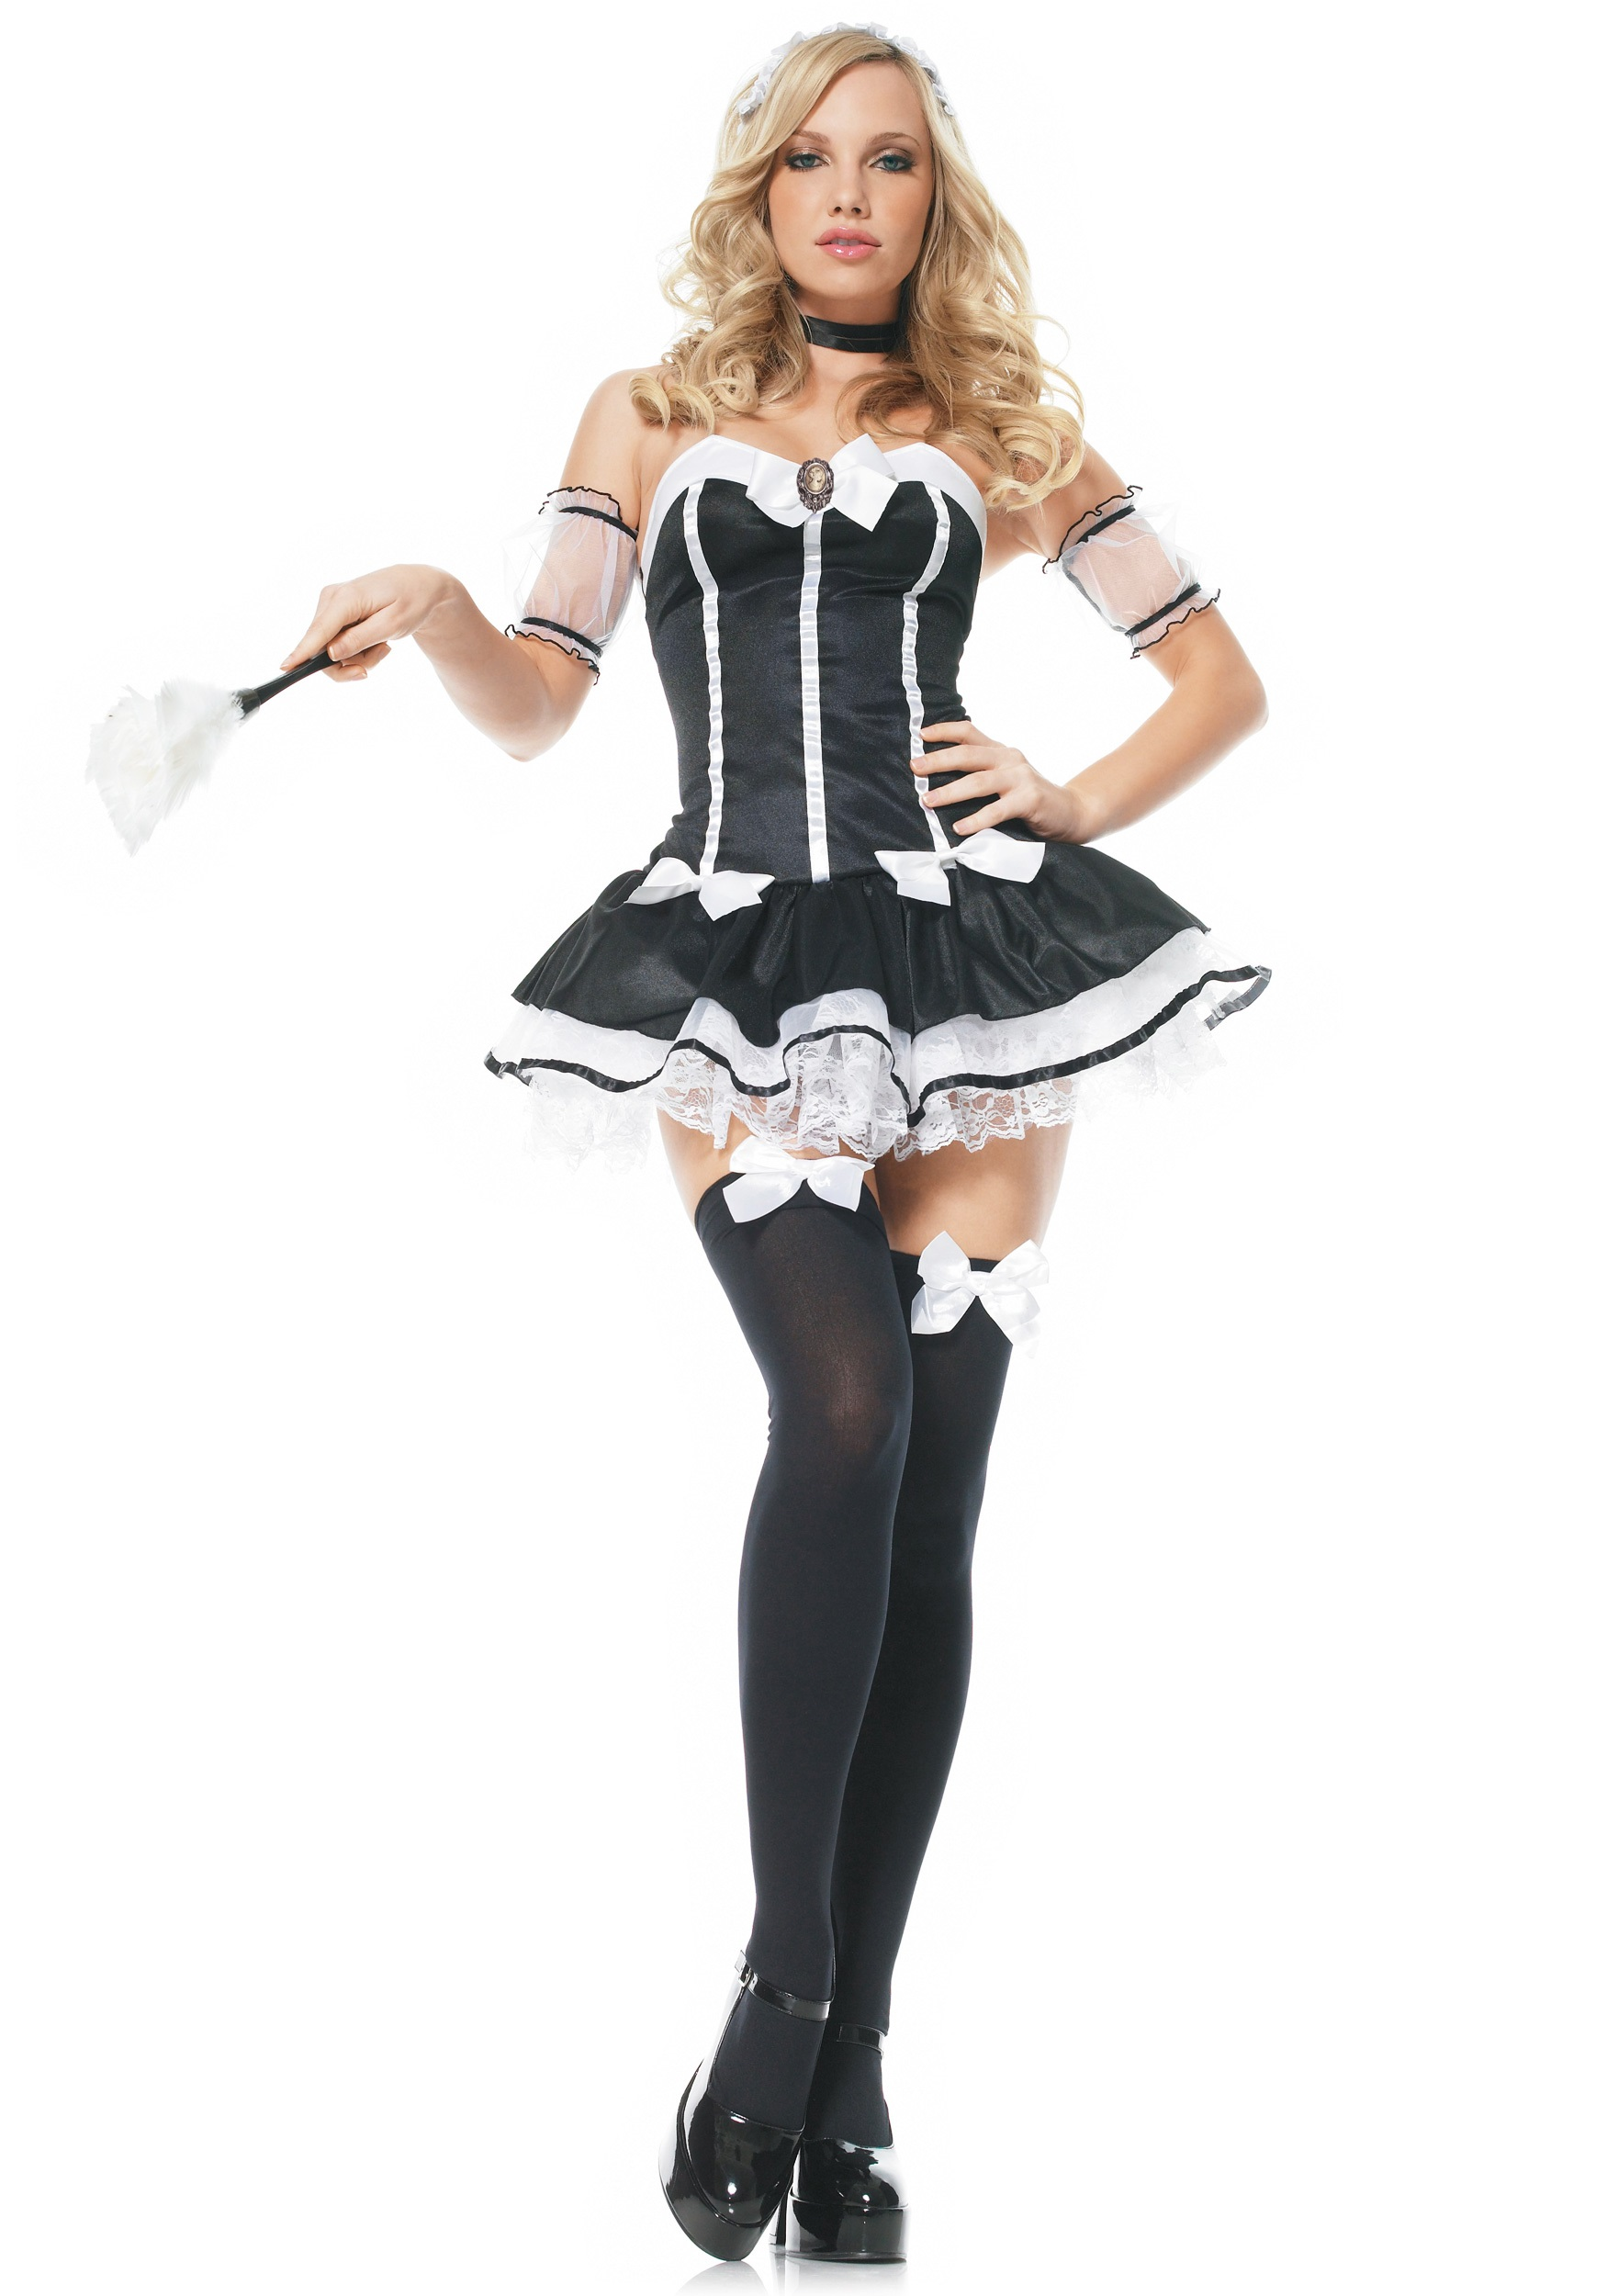 Sexual adult costumes